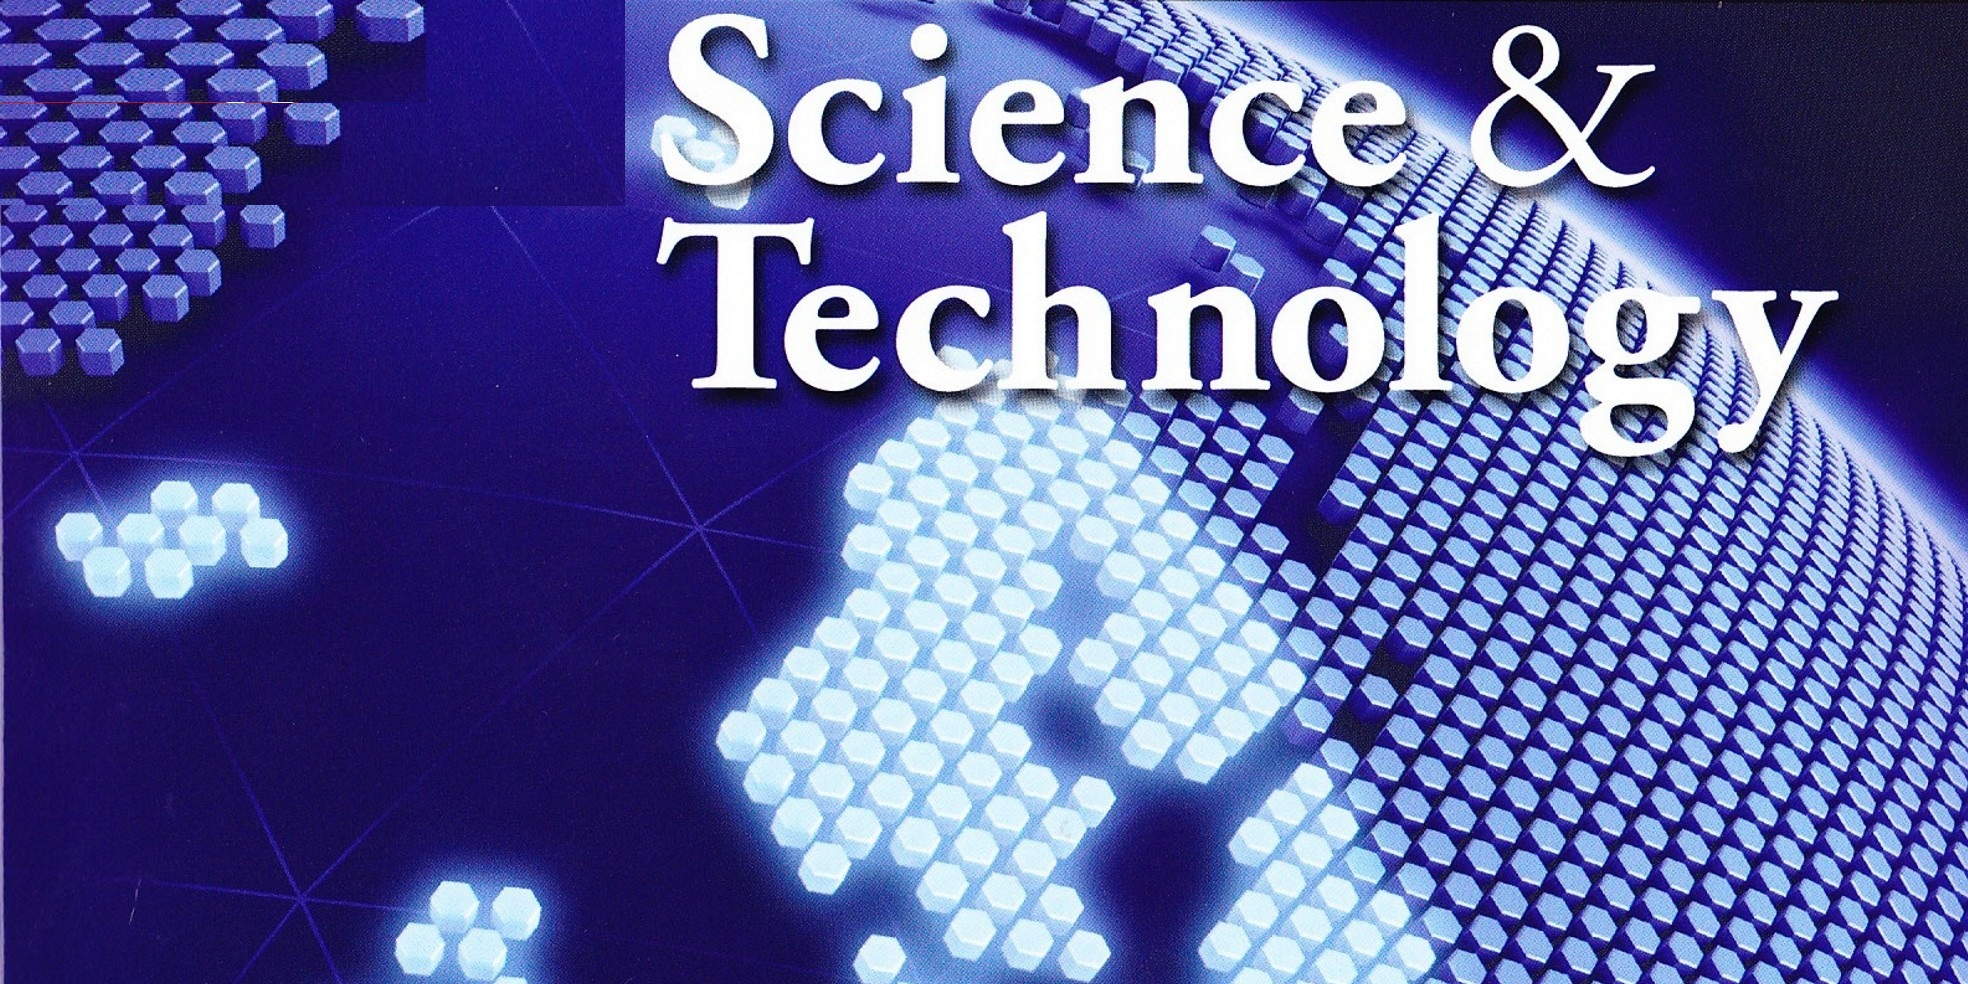 essay on development of science in india Free sample essay on scientific and technological development in india (free to read) the modern age is the age of science, technology, knowledge and information.